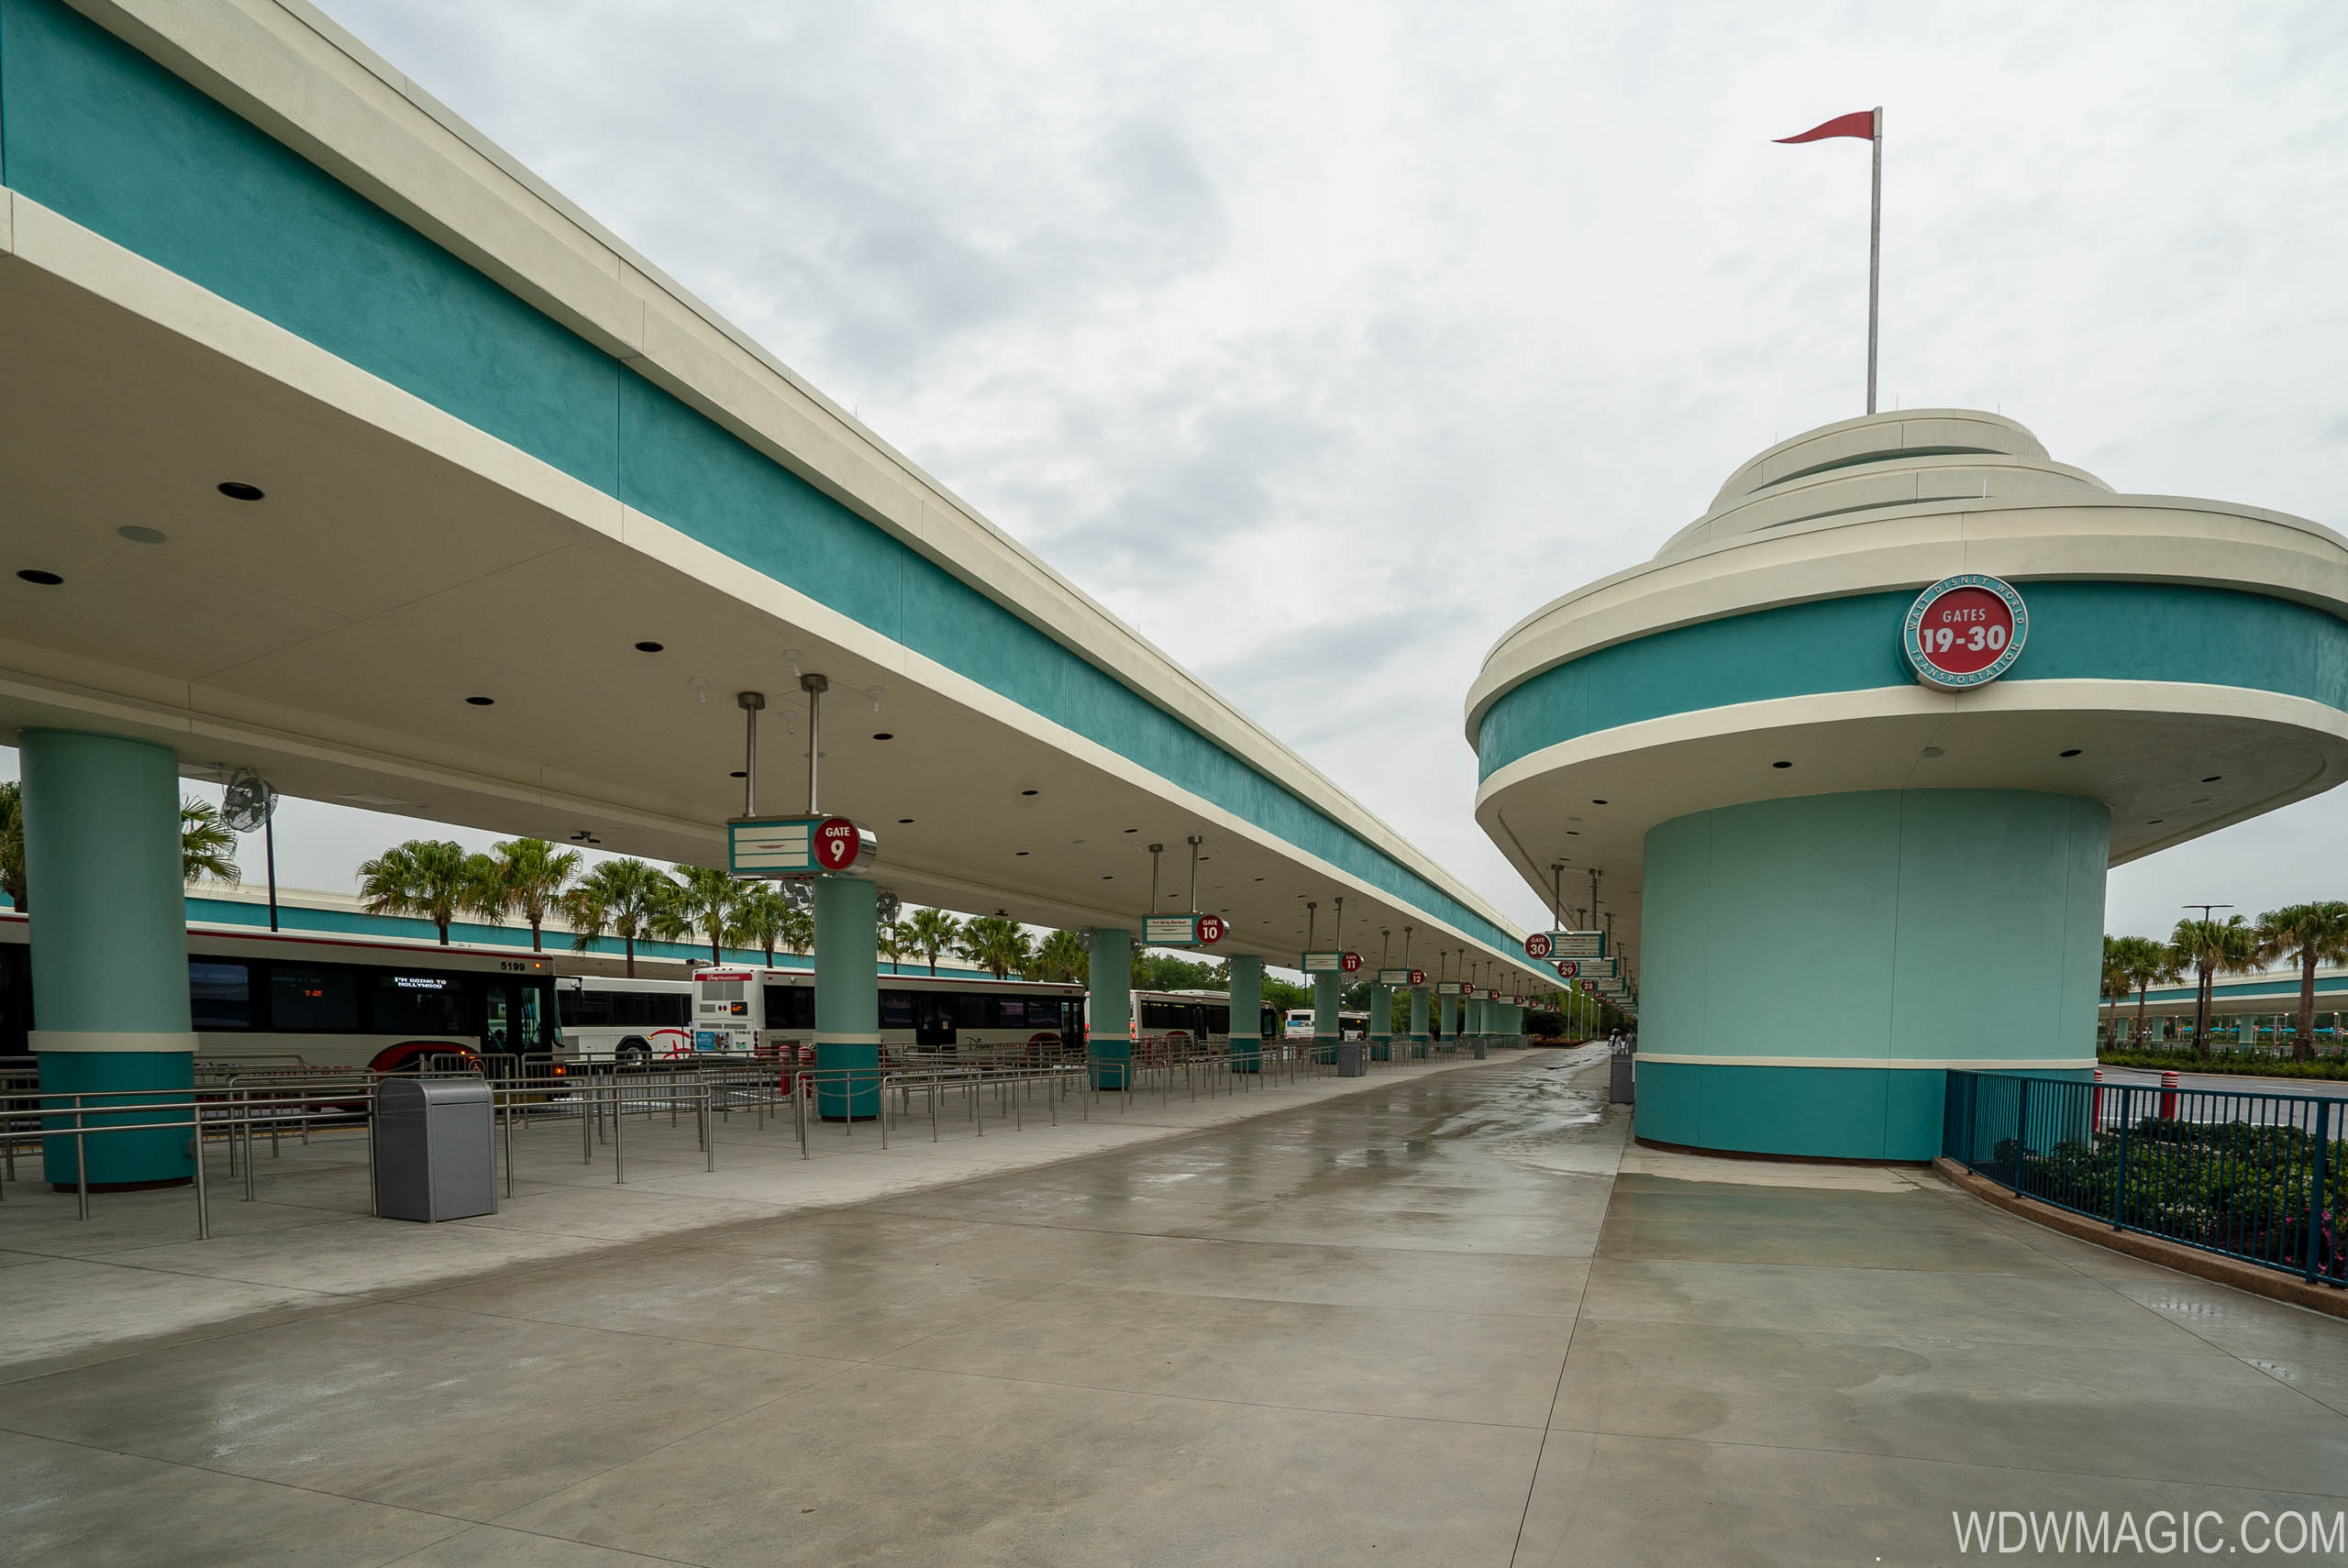 New resort bus loops at Disney's Hollywood Studios